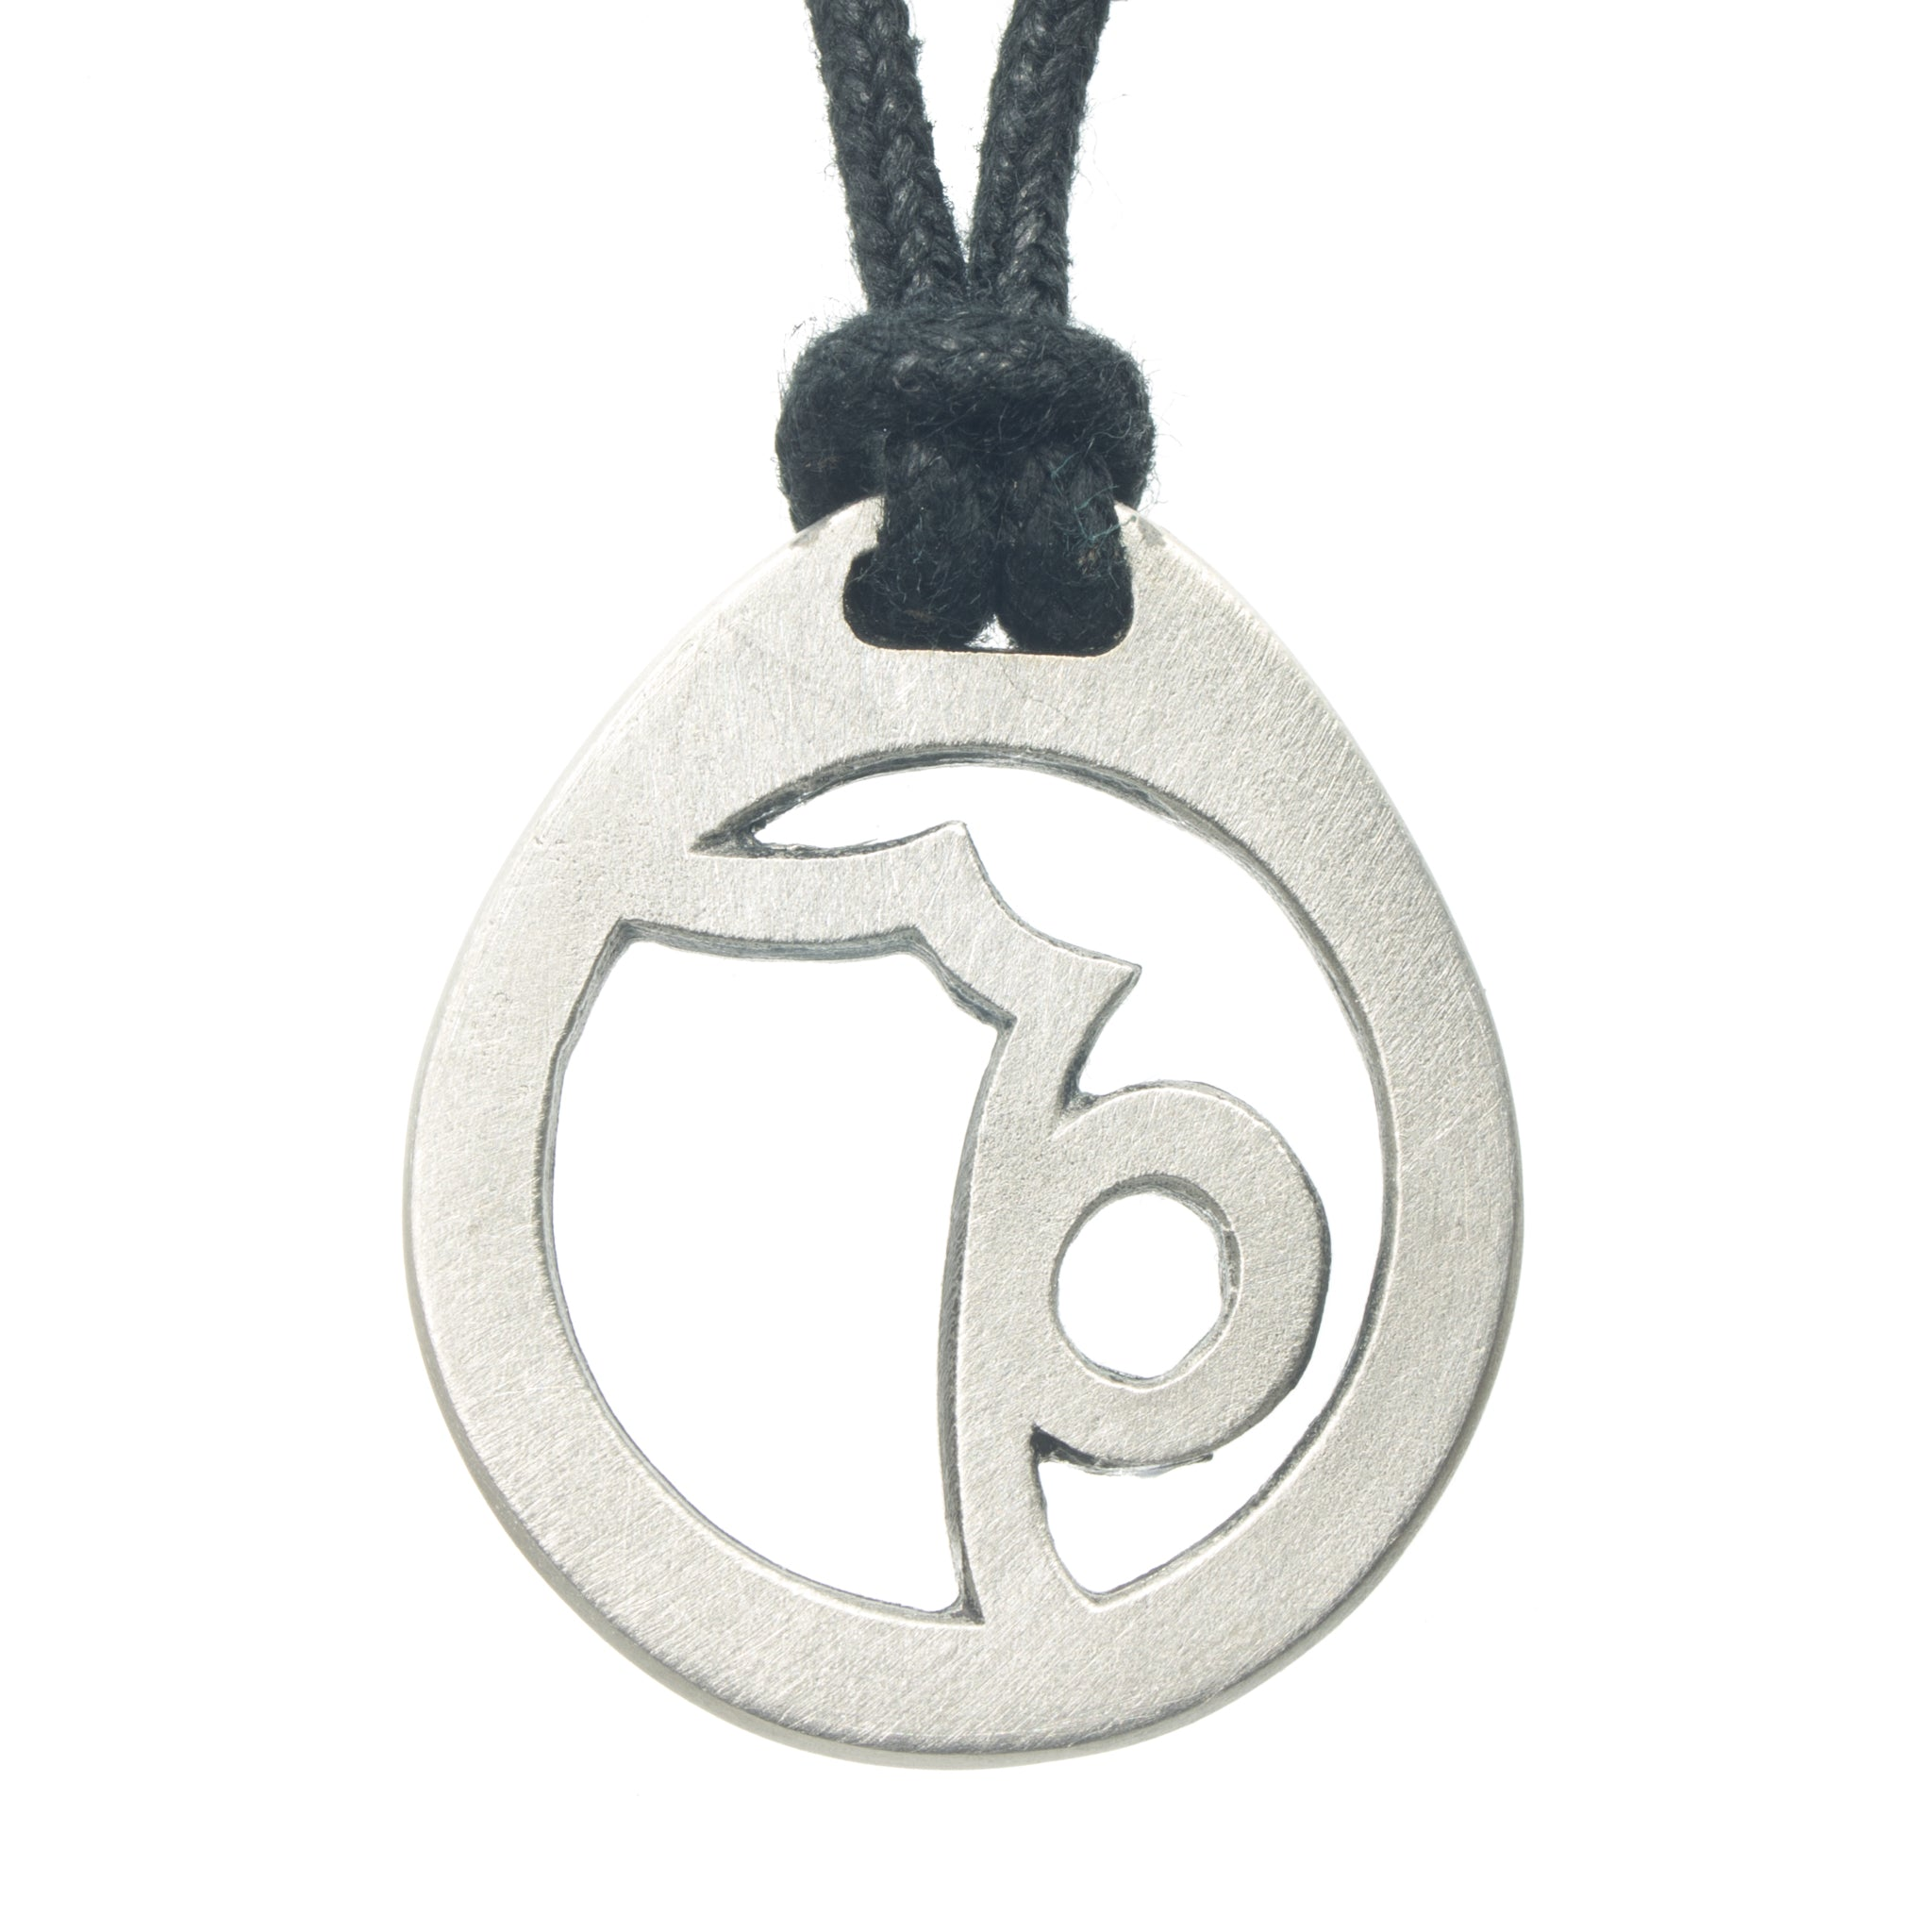 fullxfull ca r pewter il description tennesmed rune listing vintage pendant swedish necklace